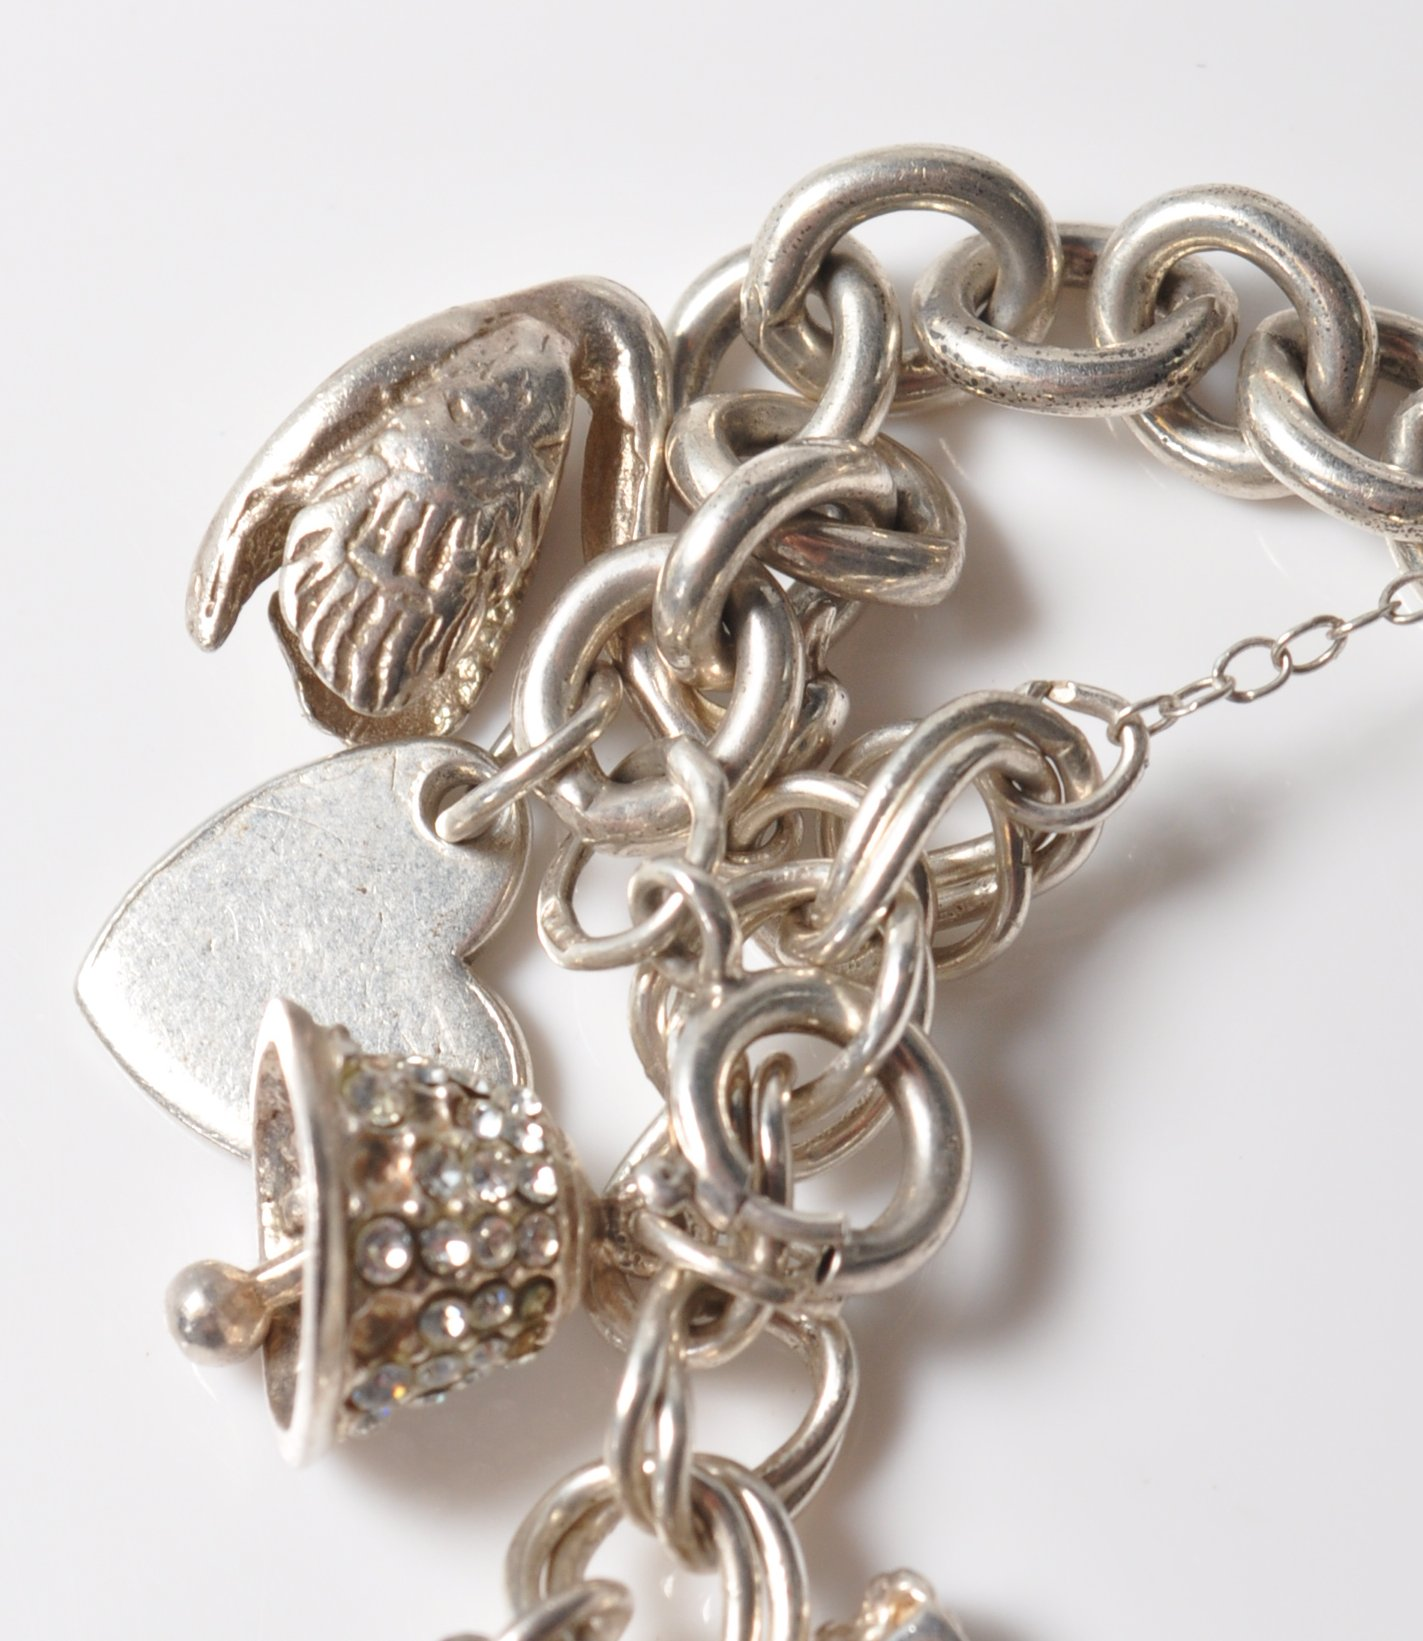 SILVER STAMPED 925 CHARM BRACELET. TOTAL WEIGHT 64 GRAMS. - Image 6 of 8